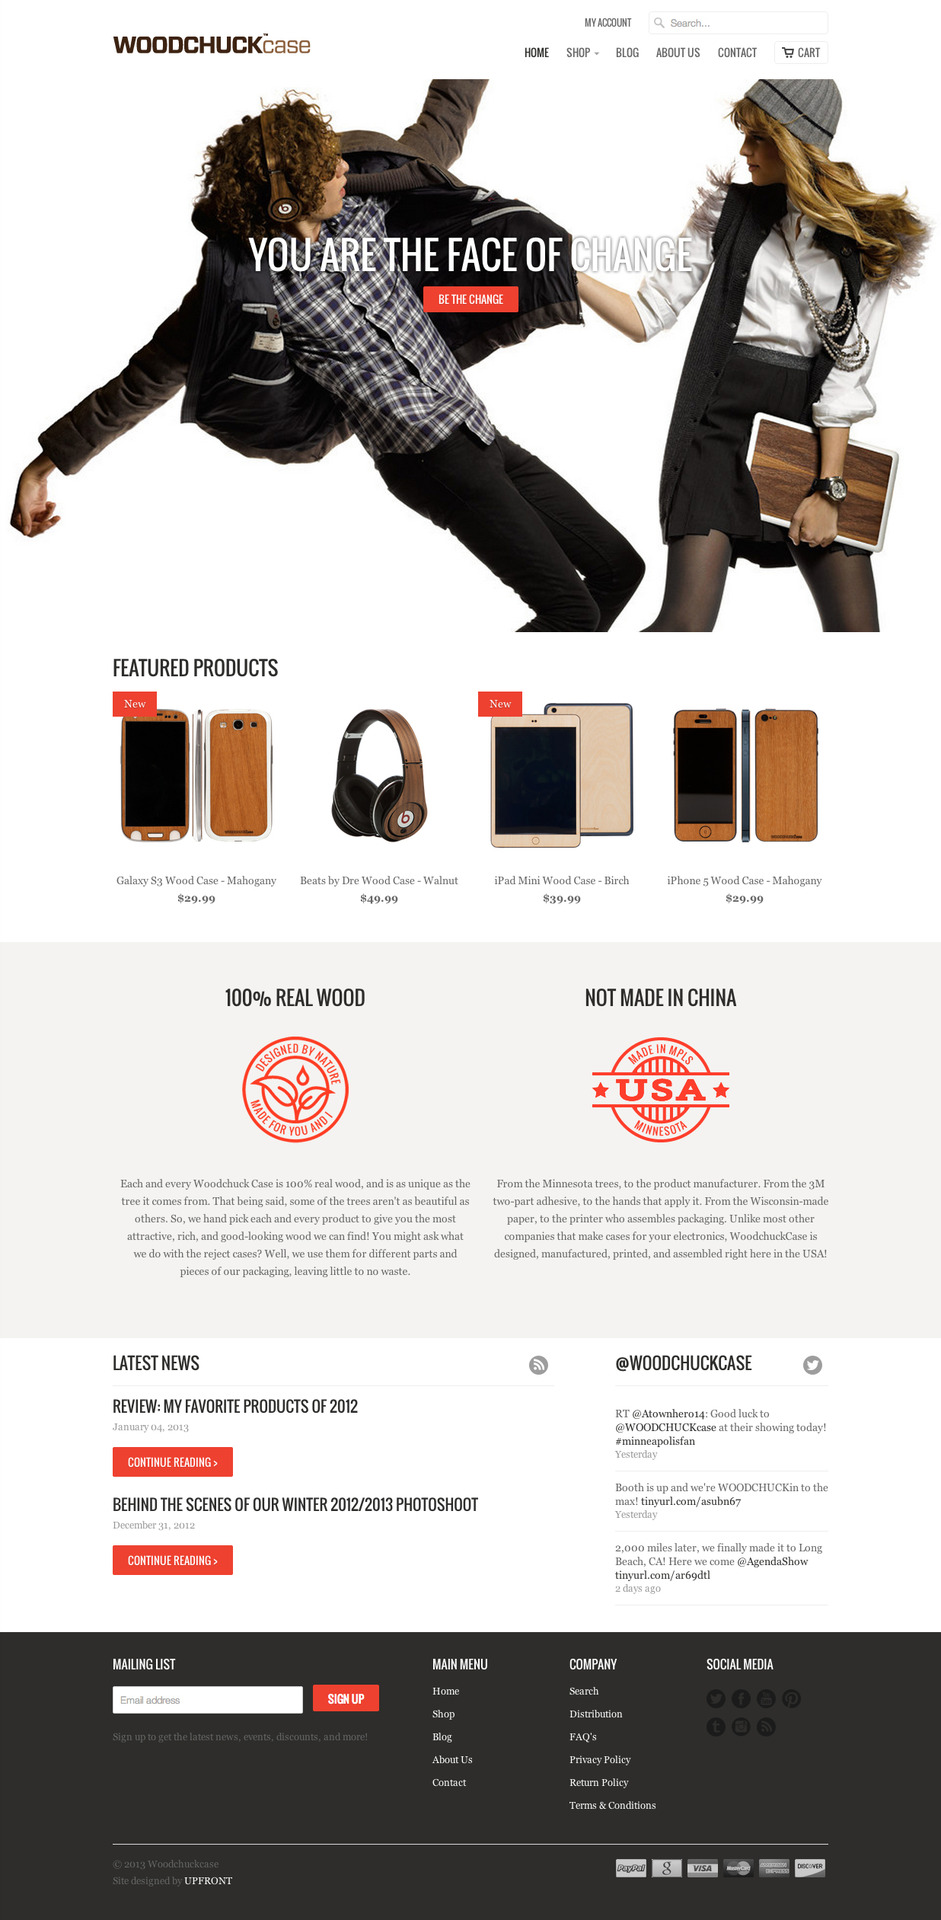 Check out the new website I designed and developed for  WoodchuckCase!